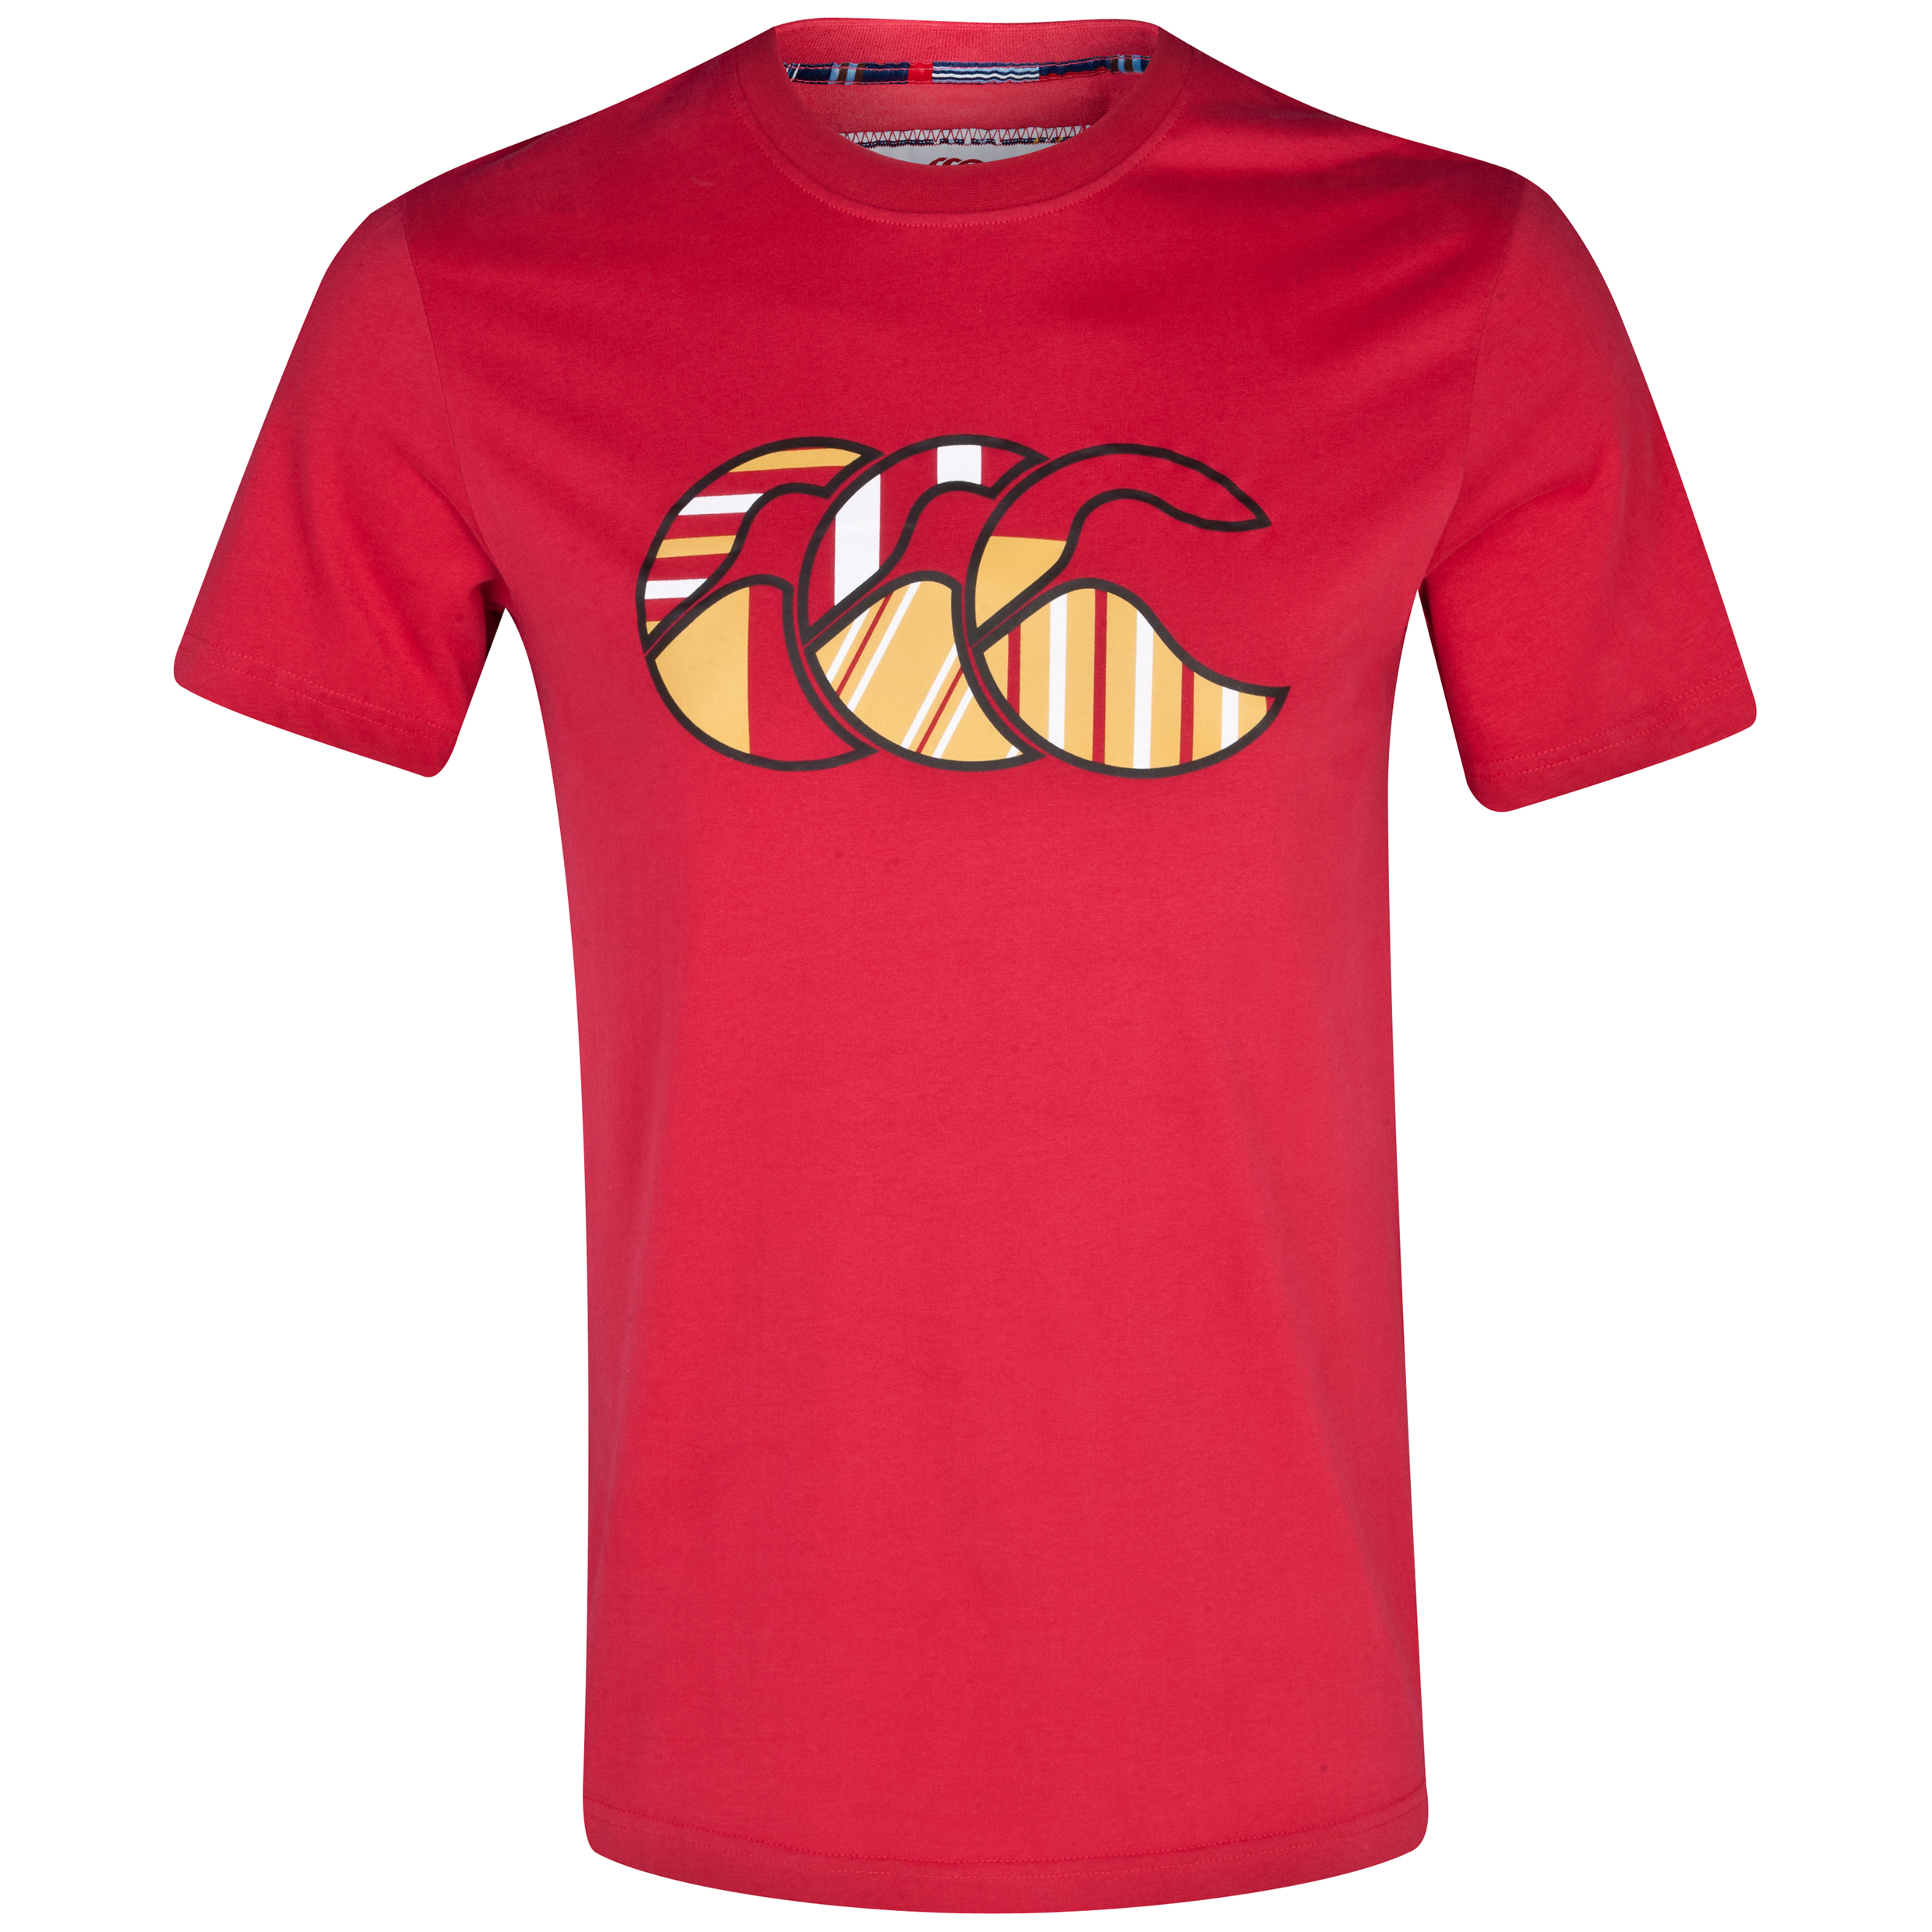 Canterbury Uglies Graphic Tee Red